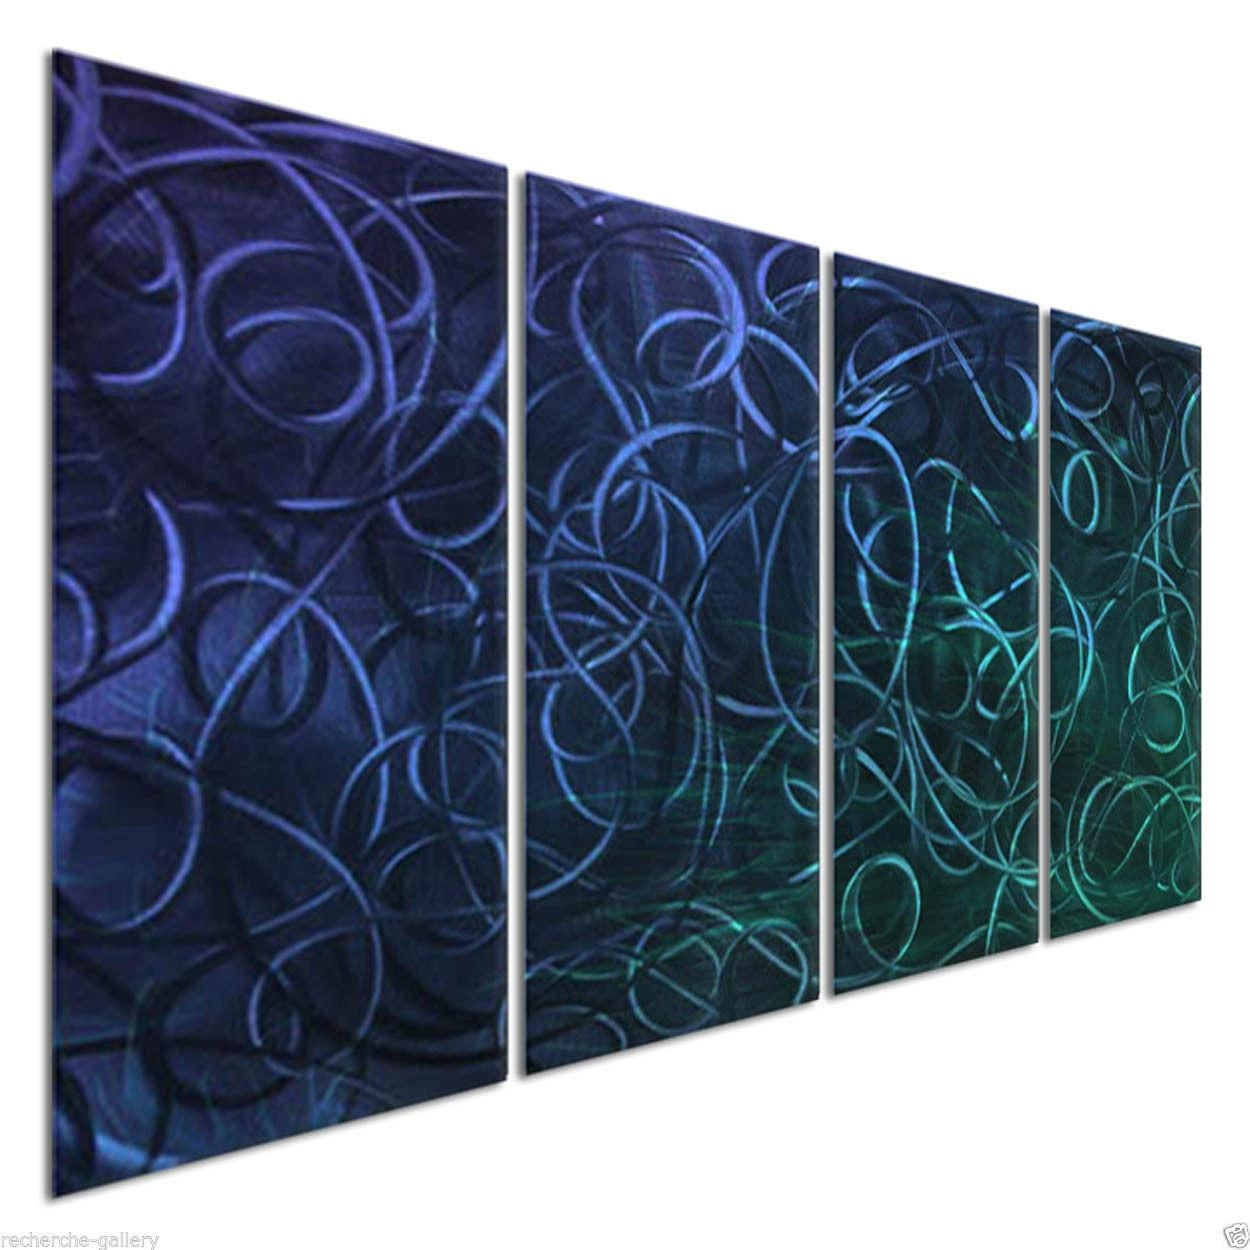 Abstract Painting On Metal Wall Sculpture Art Blue Pandemonium Iii With Ash Carl Metal Art (Image 1 of 20)